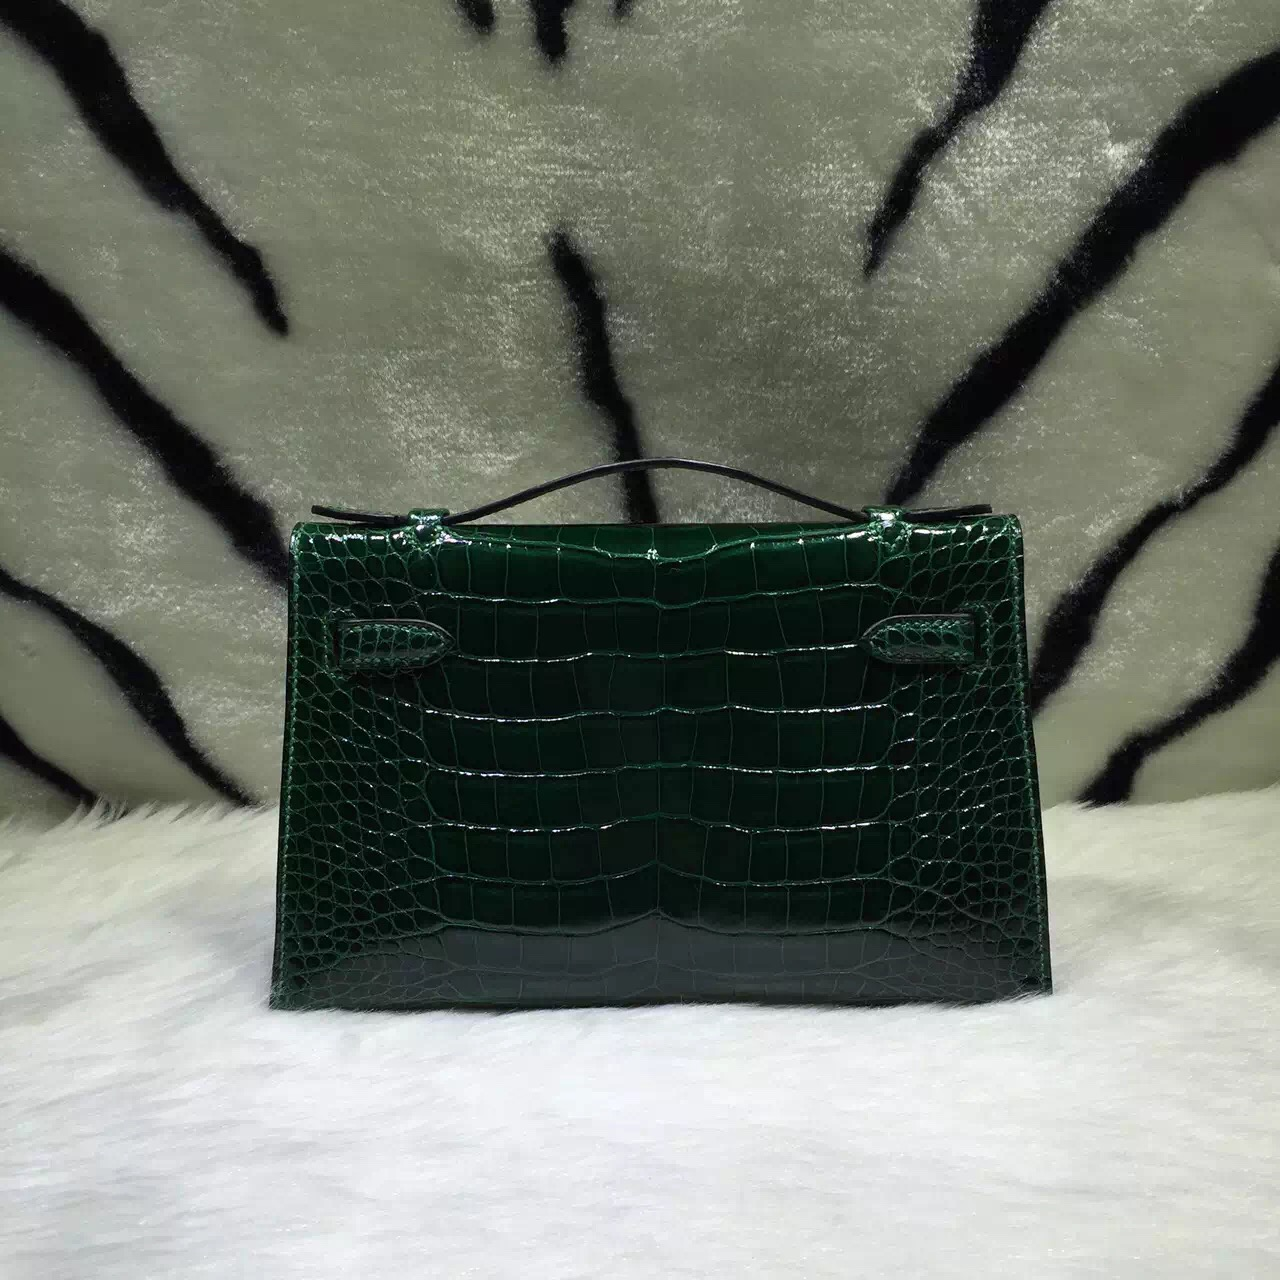 Hand Stitching Hermes Mini Kelly Bag CK67 Emerald Green Crocodile Skin